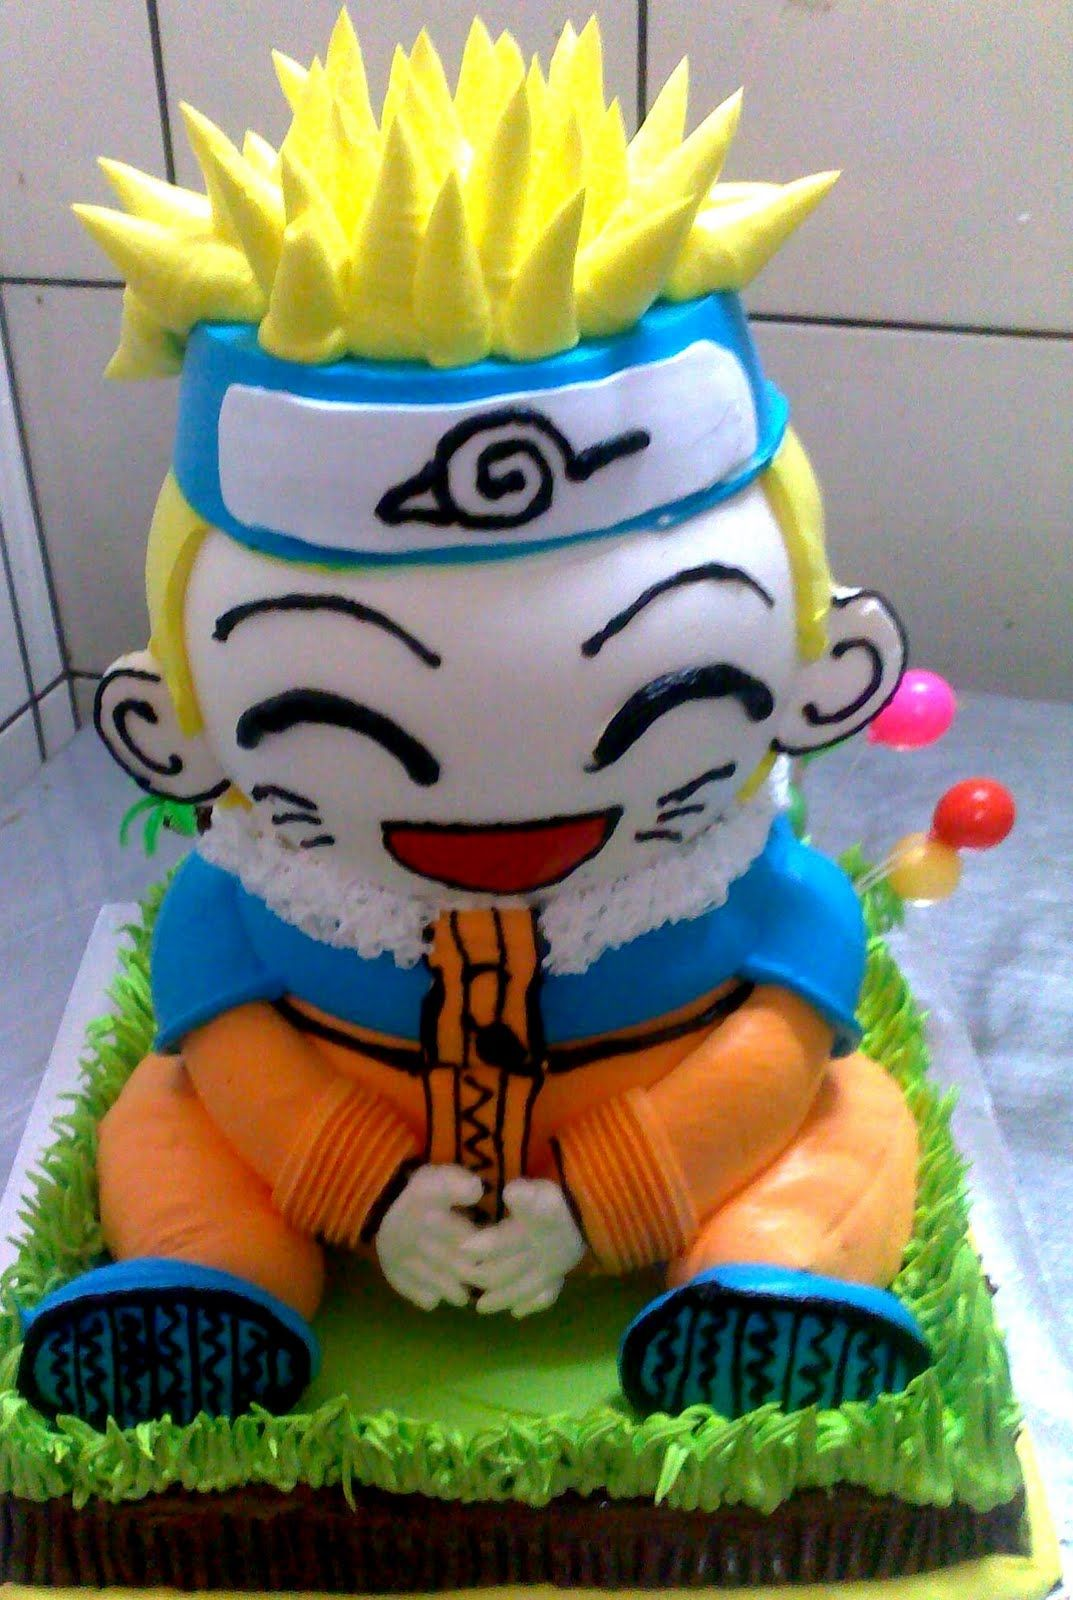 Admirable Uzumaki Naruto 3D Birthday Cake With Images 3D Birthday Cake Funny Birthday Cards Online Inifodamsfinfo